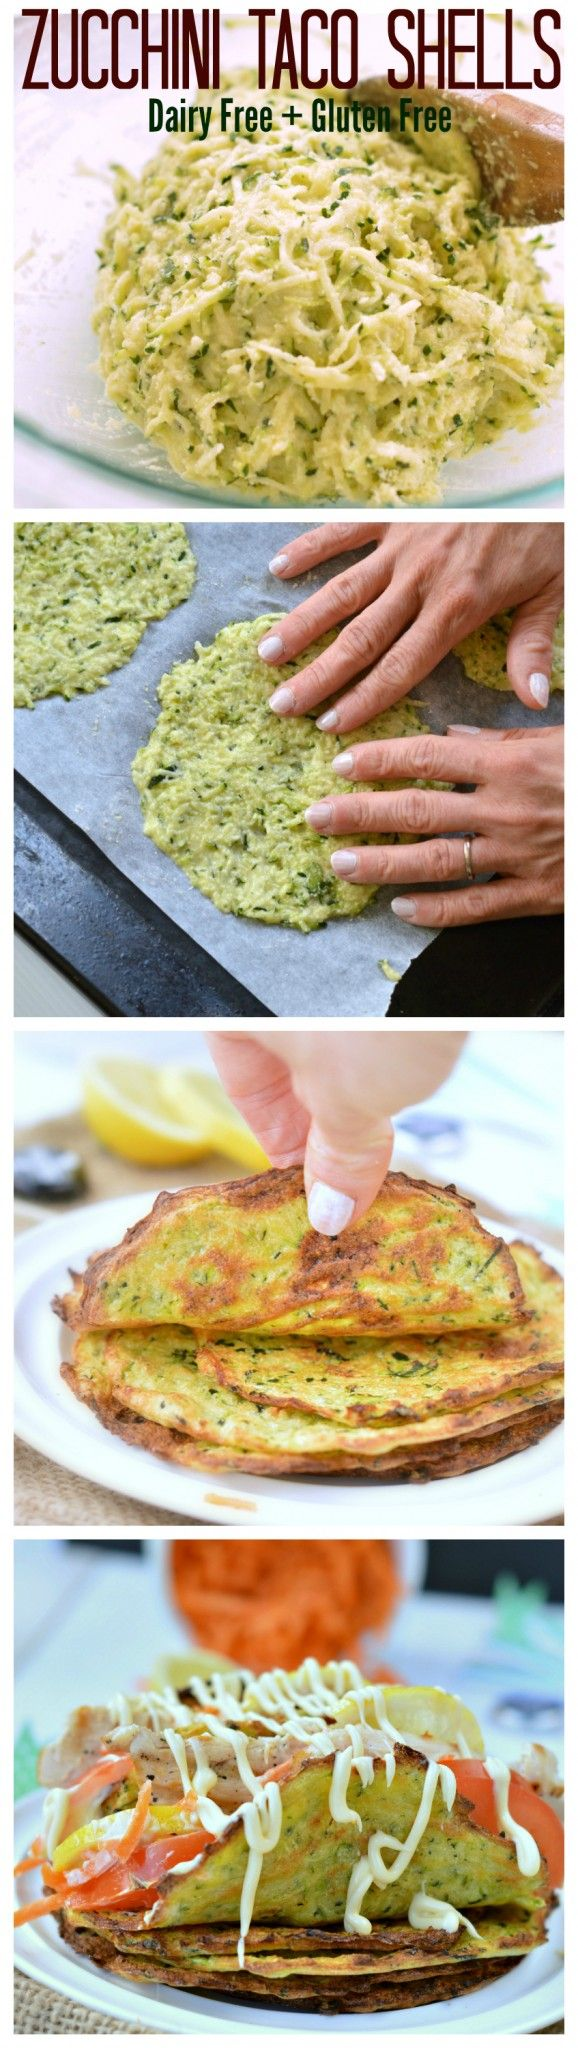 1 cup grated zucchini, packed, dried - about 4 medium size zucchini 1 egg 6 tablespoons arrowroot flour, packed - tapioca flour is very fine and volatile and to exactly measure the quantity I recommend to use this measuring spoon. 2 tablespoon Coconut flour. 1 teaspoon oregano Salt, Pepper